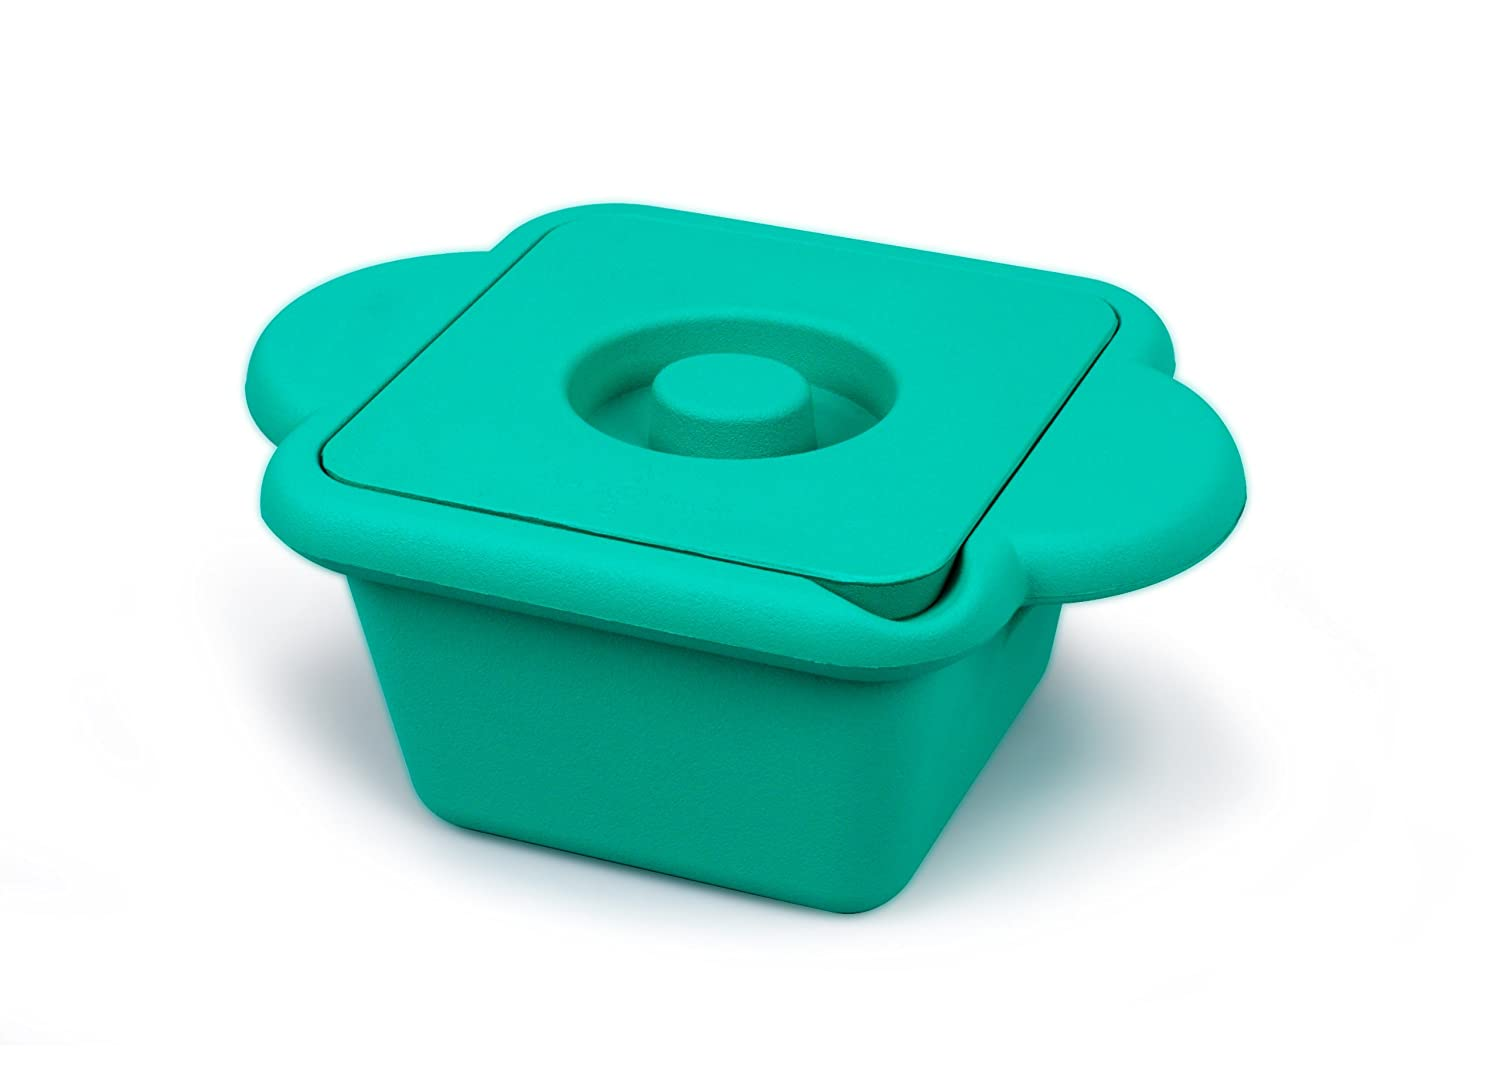 Heathrow Scientific HD28721G True North Cool Container Pan with Ergonomic Handle, Polyurethane, 1L Capacity, Emerald